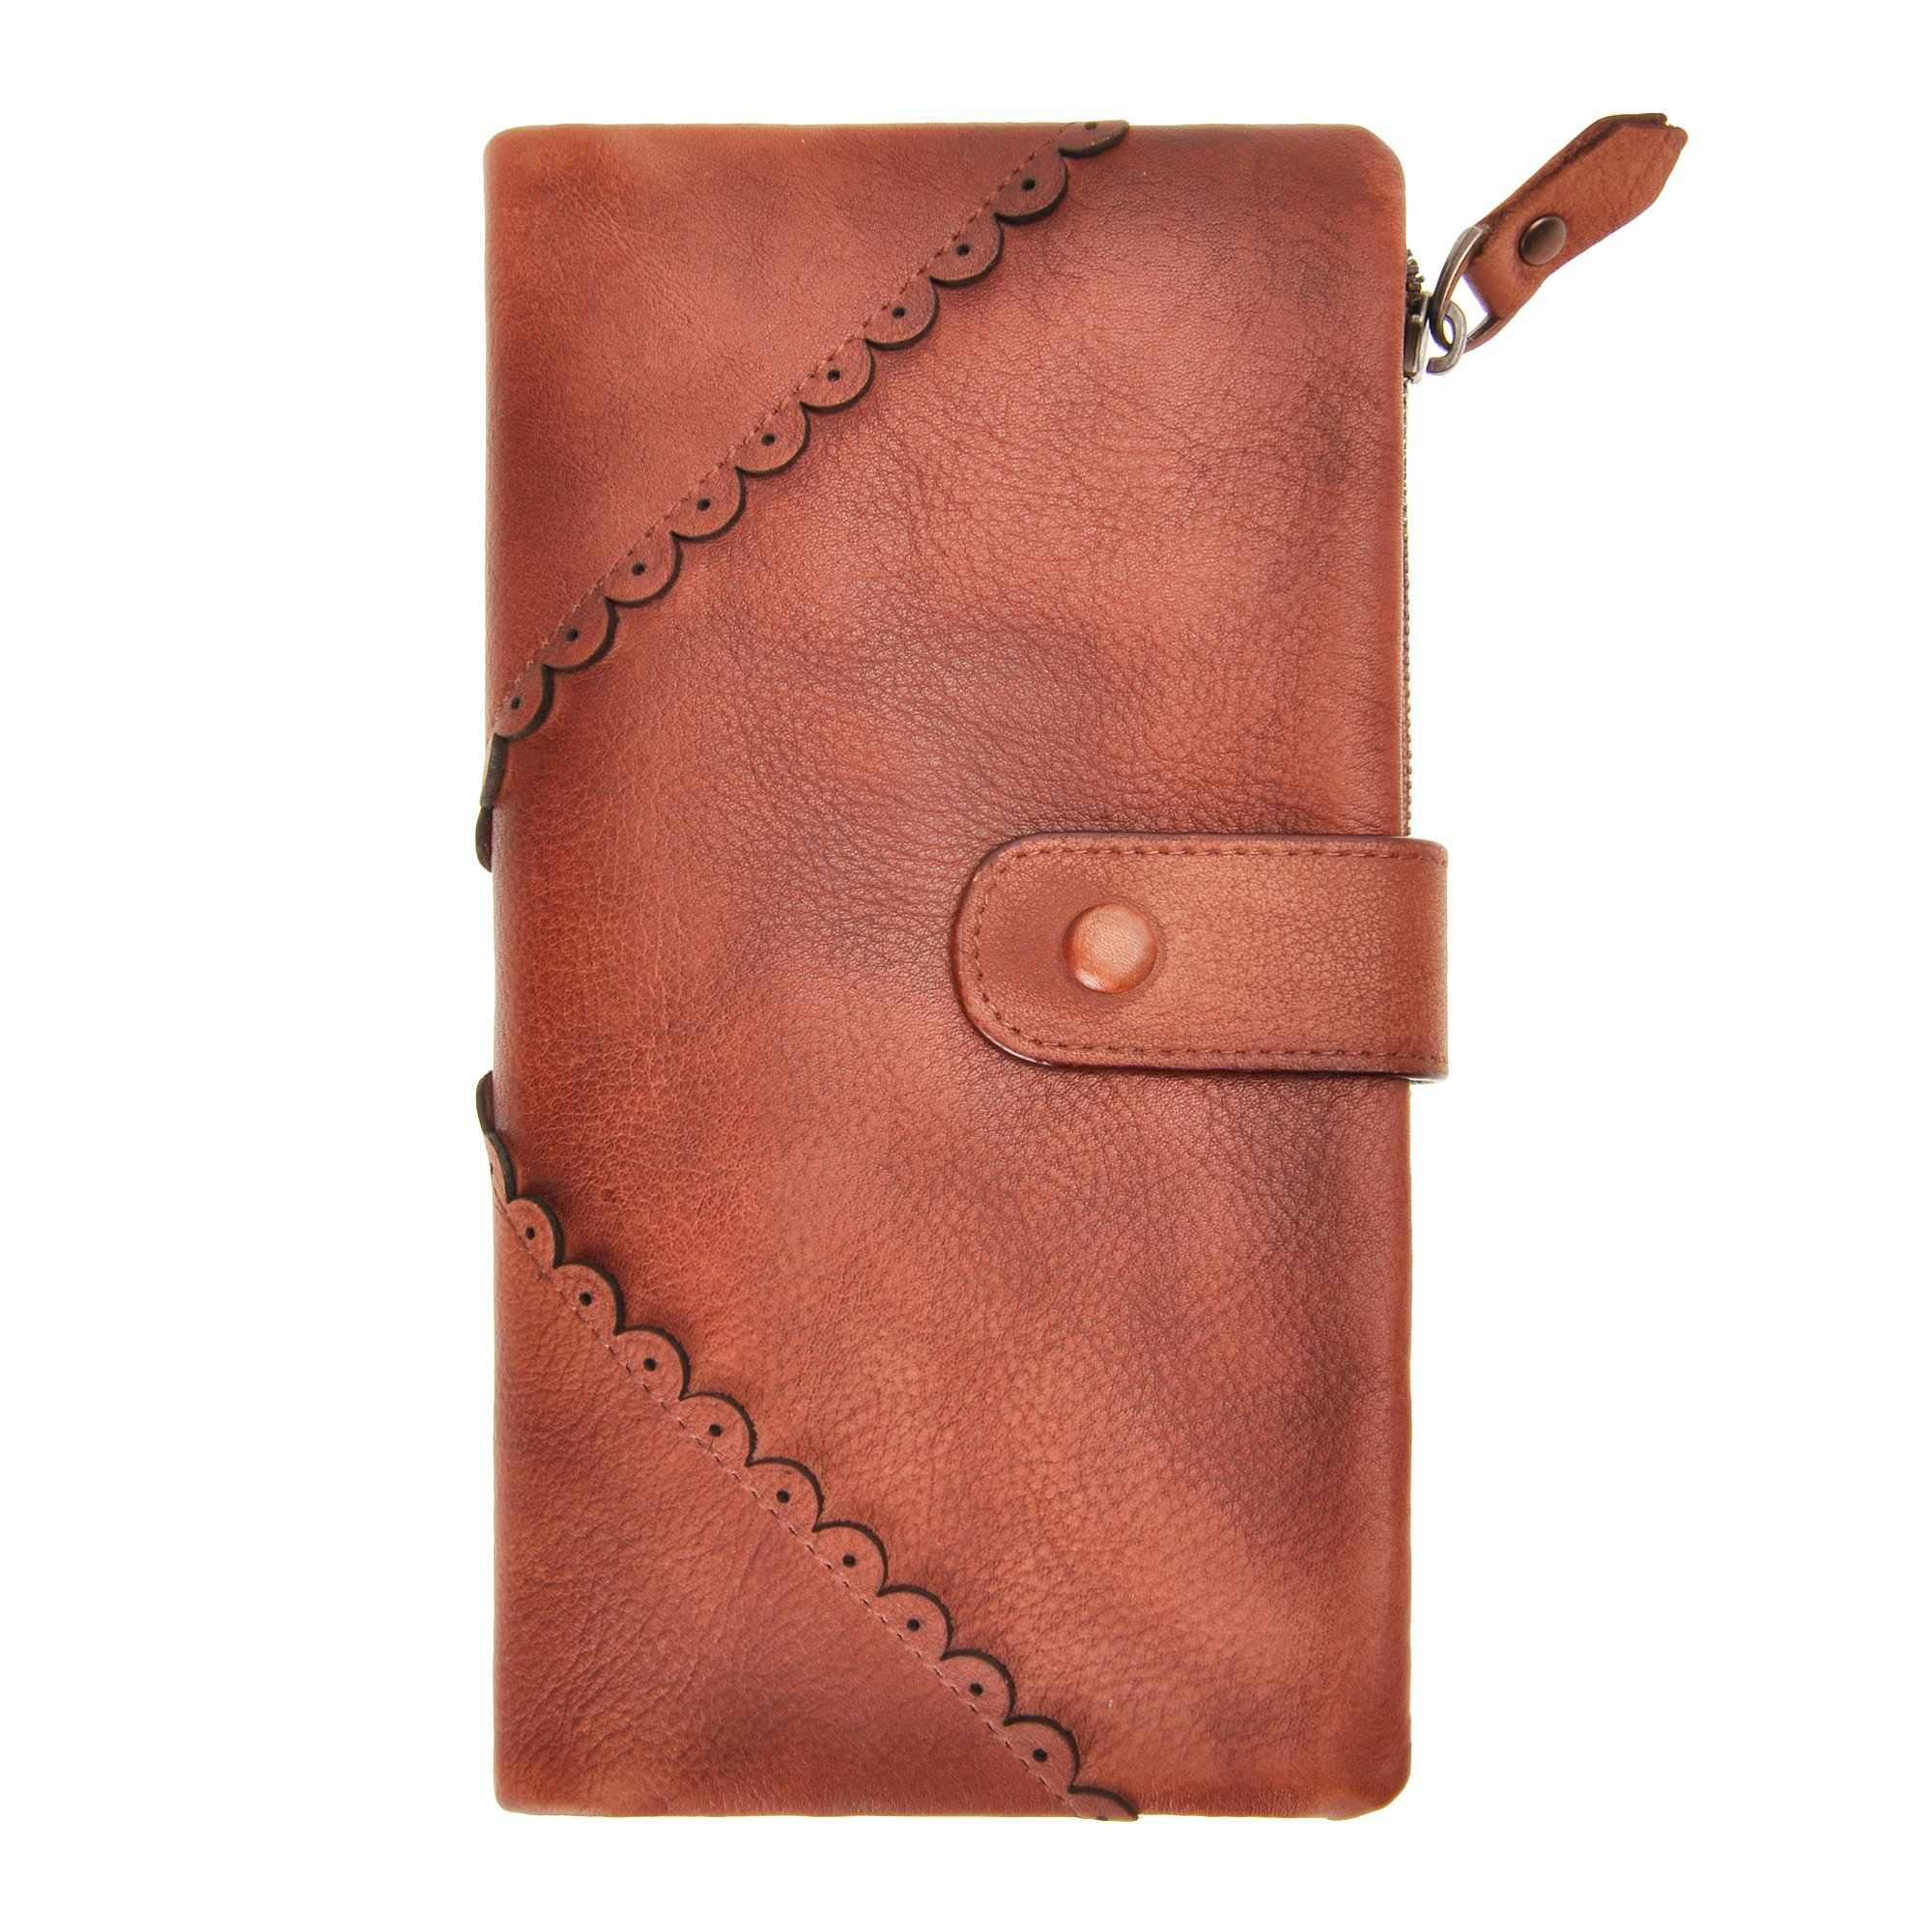 Women's Retro Style Long Clutch ZLYC Handmade Leather Purse Wallet with ID Window and Lace Detail (Light Orange)